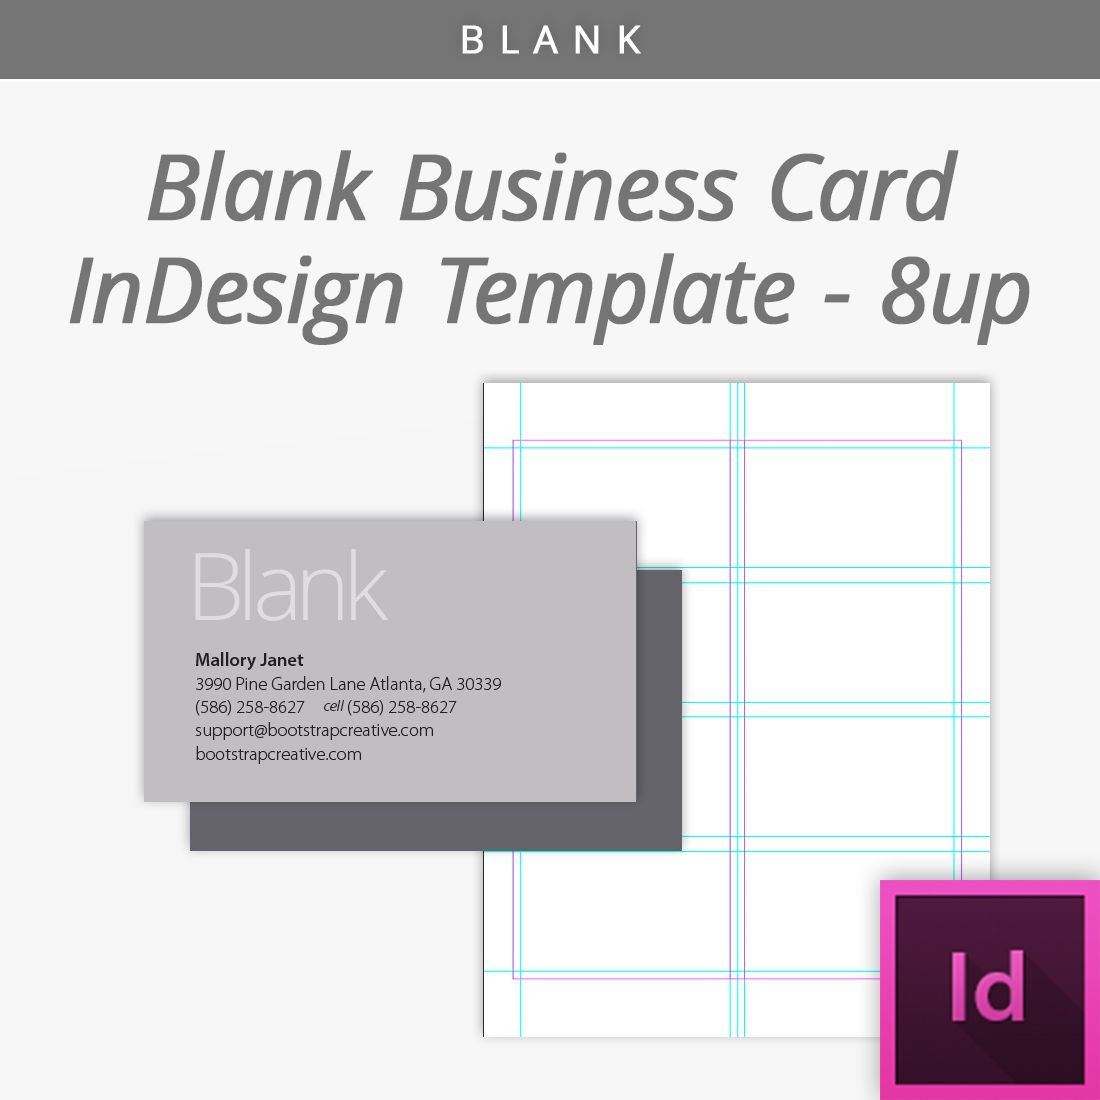 Blank Indesign Business Card Template 8 Up Free Download - Free Printable Blank Business Cards